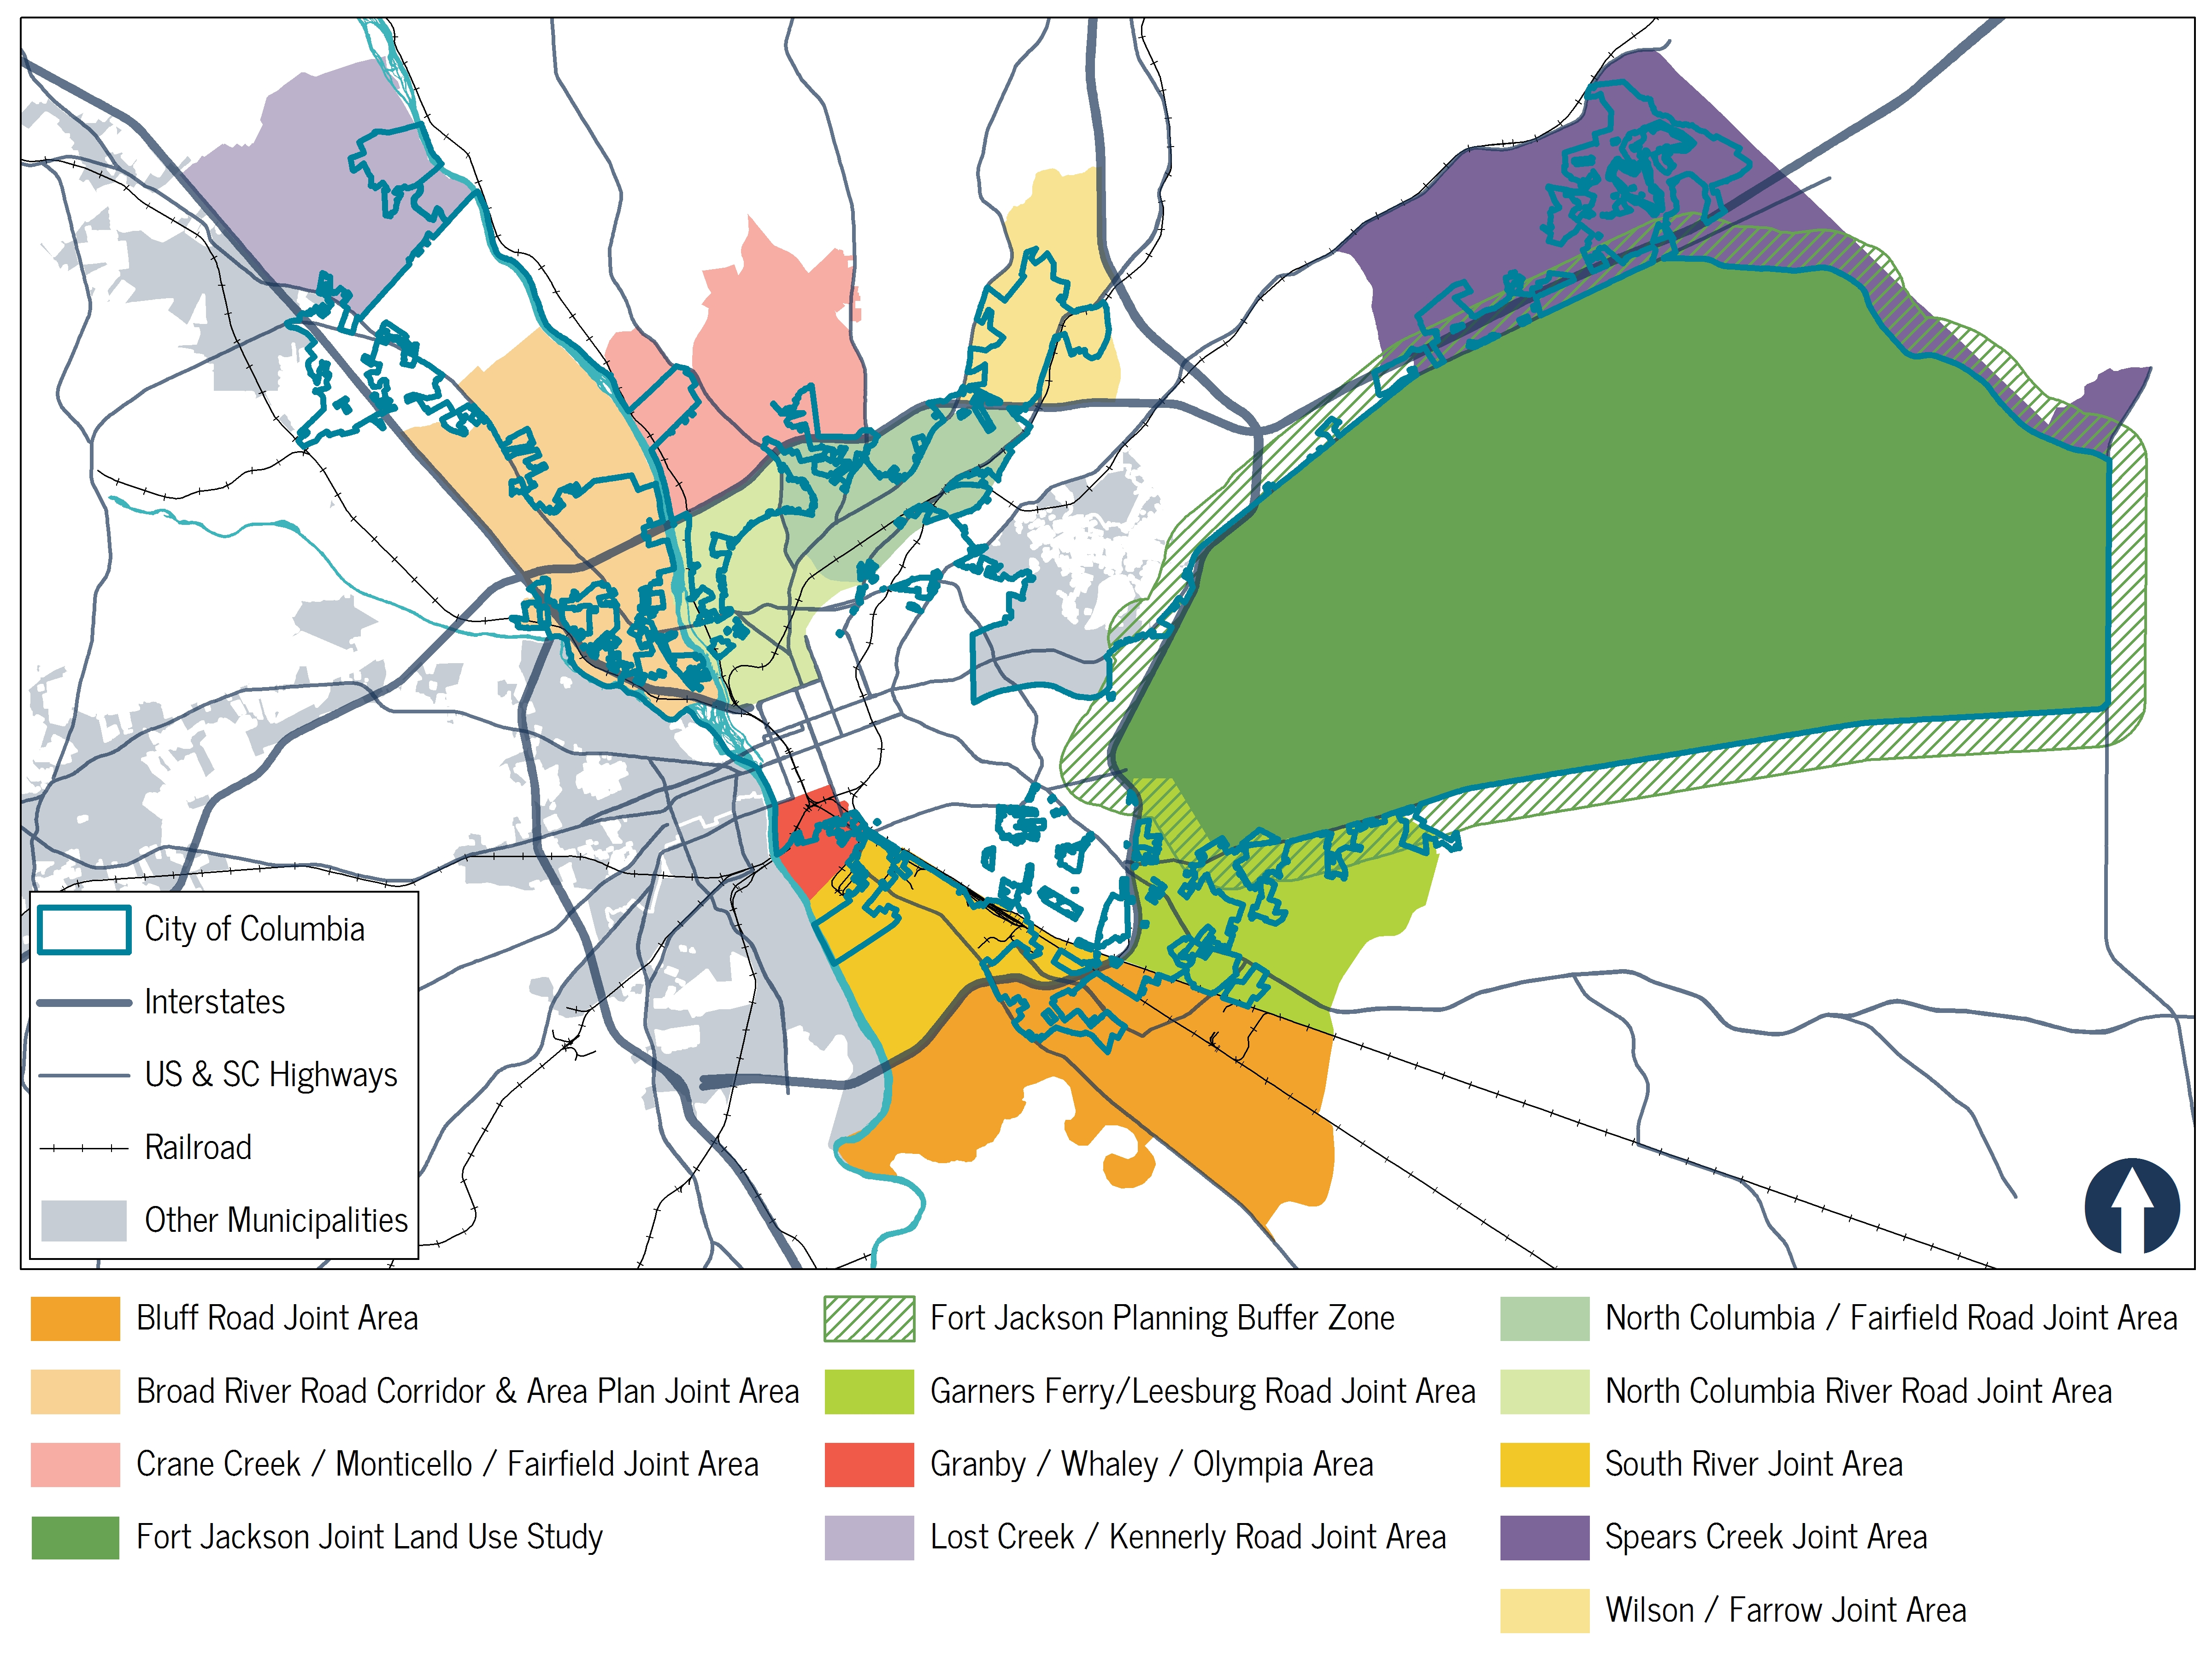 Map of area plans recommended by Plan Columbia: Land Use Plan, dated 2/1/2017